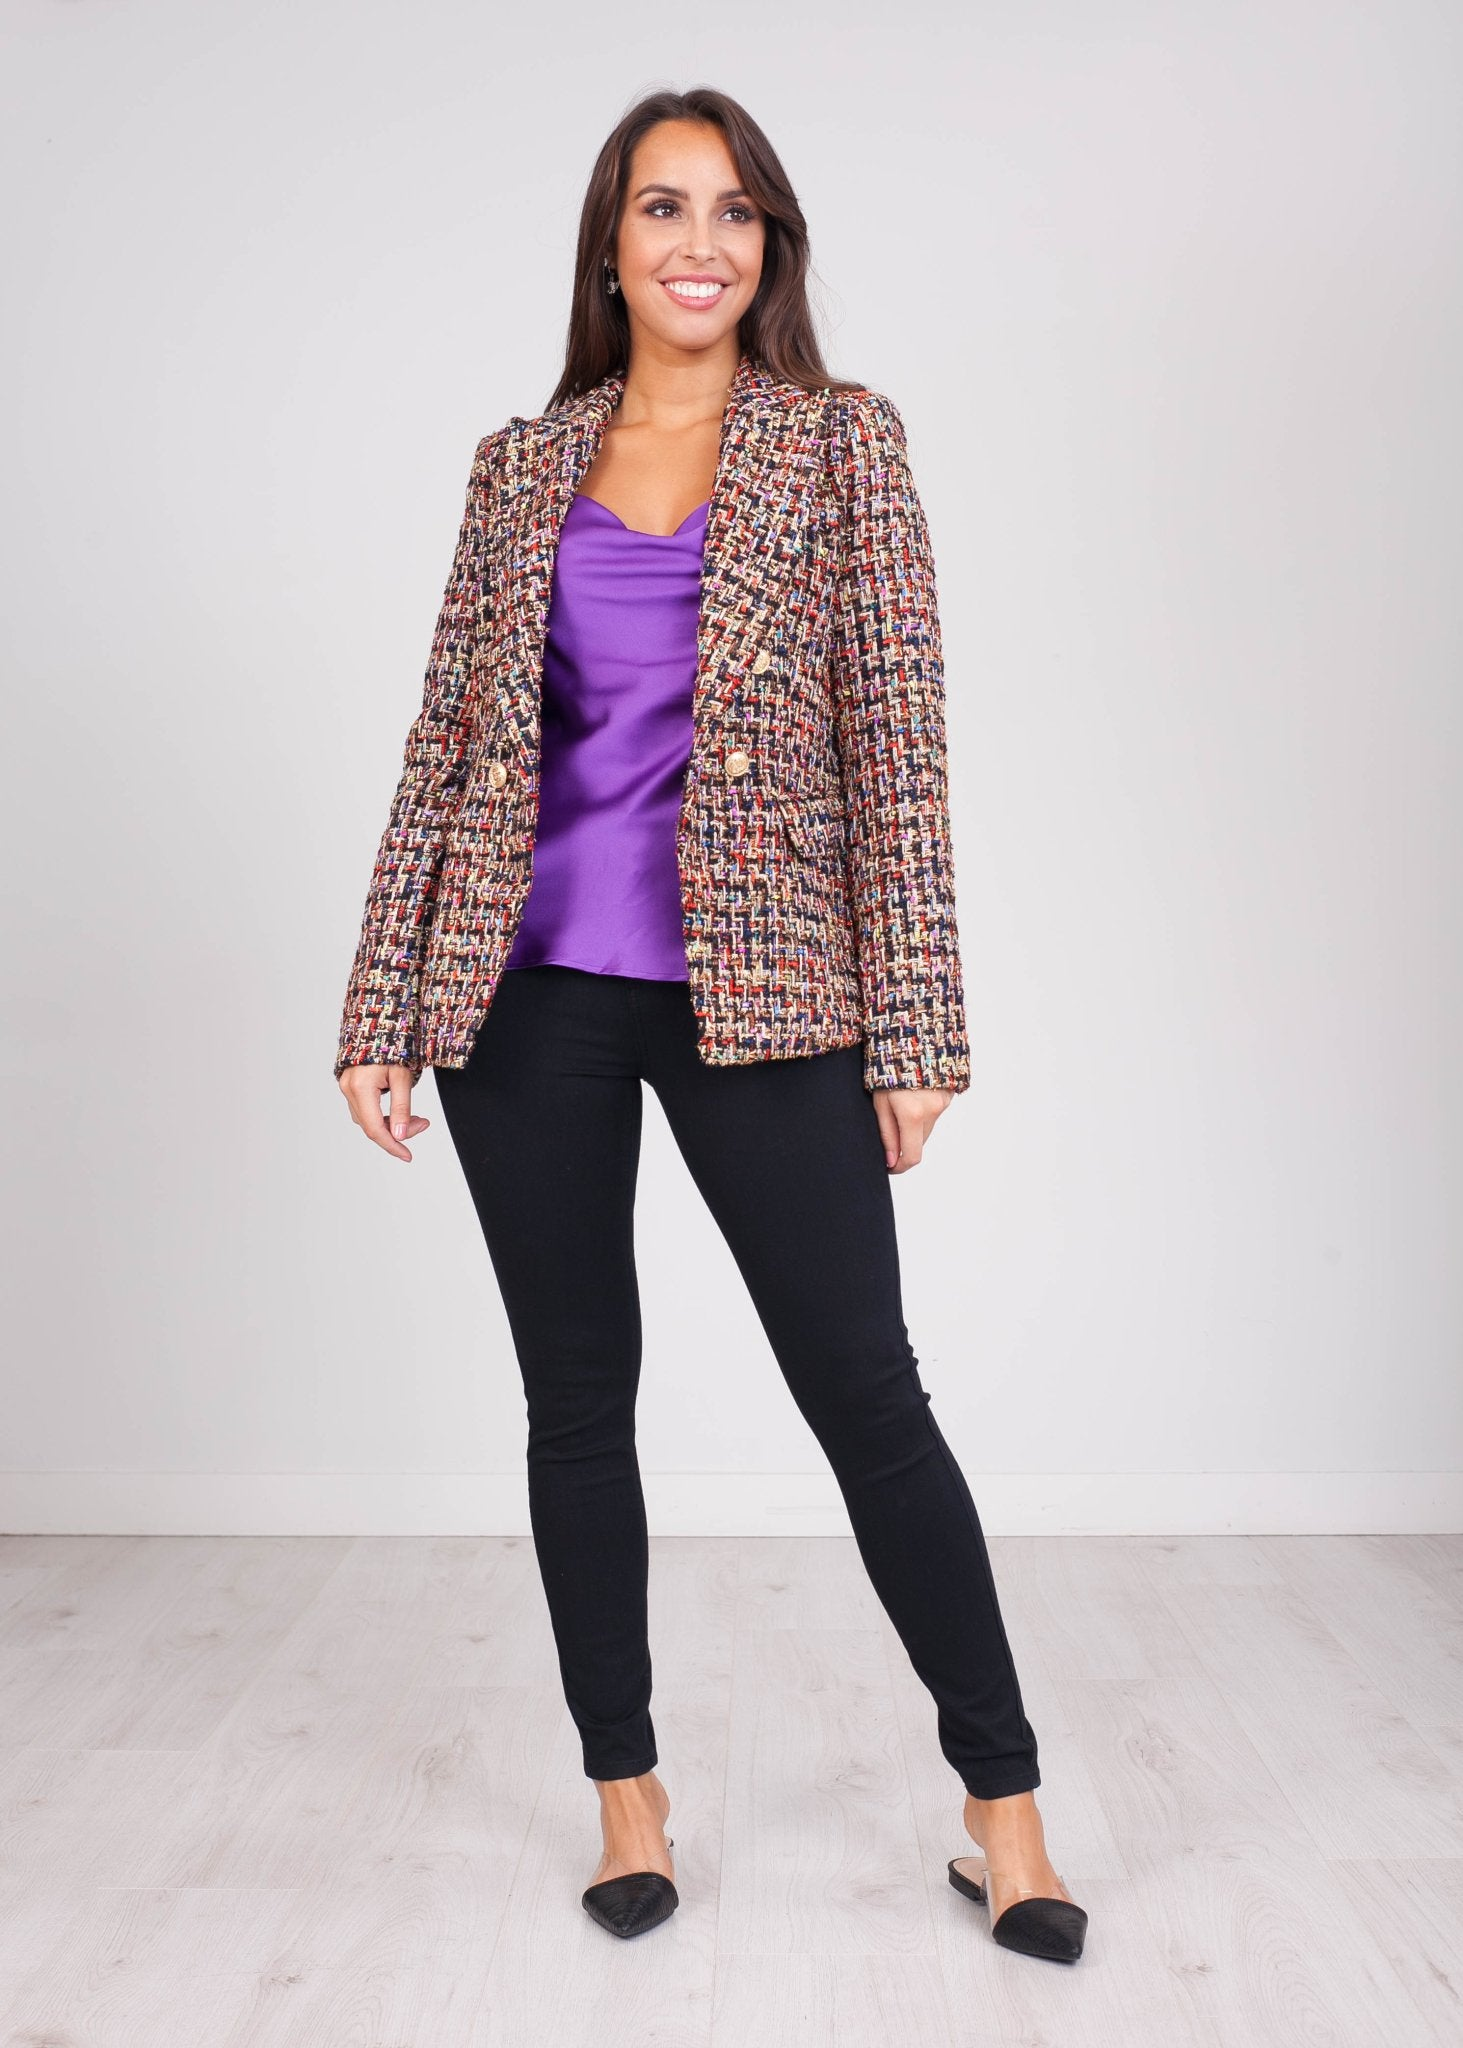 Arabella Black Multi Tweed Blazer - The Walk in Wardrobe